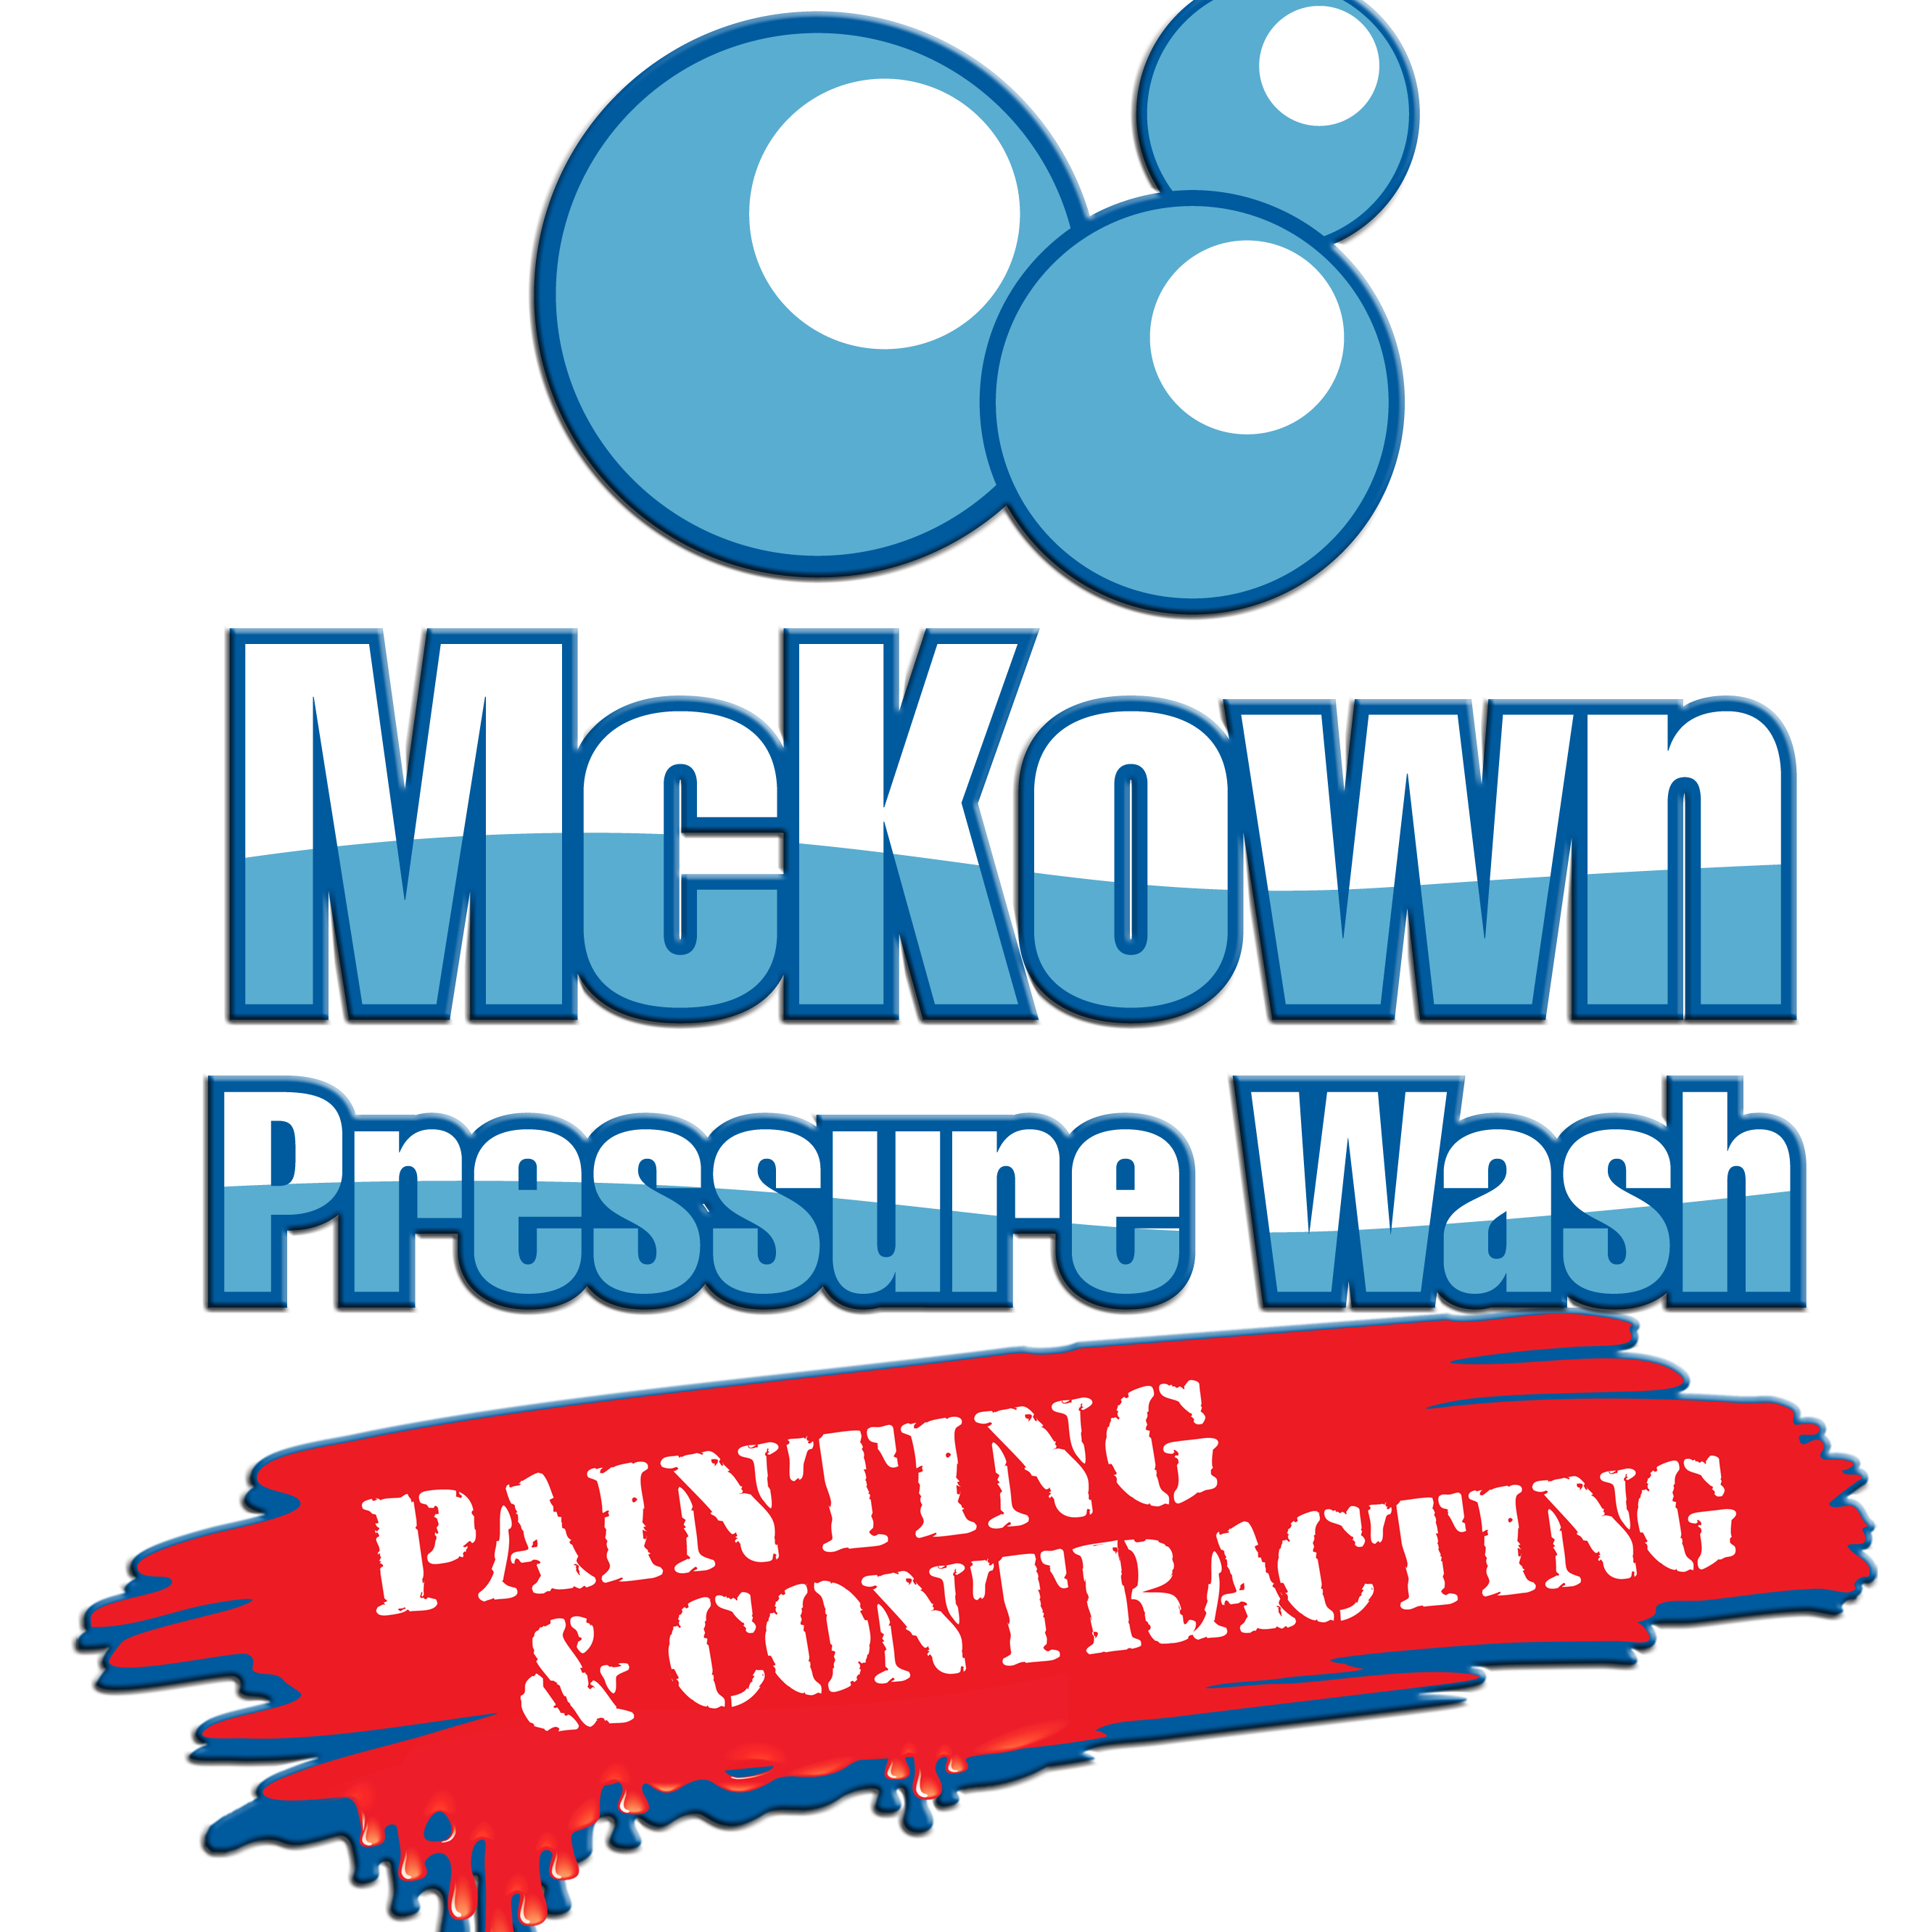 McKown Pressure Wash Painting & Contracting